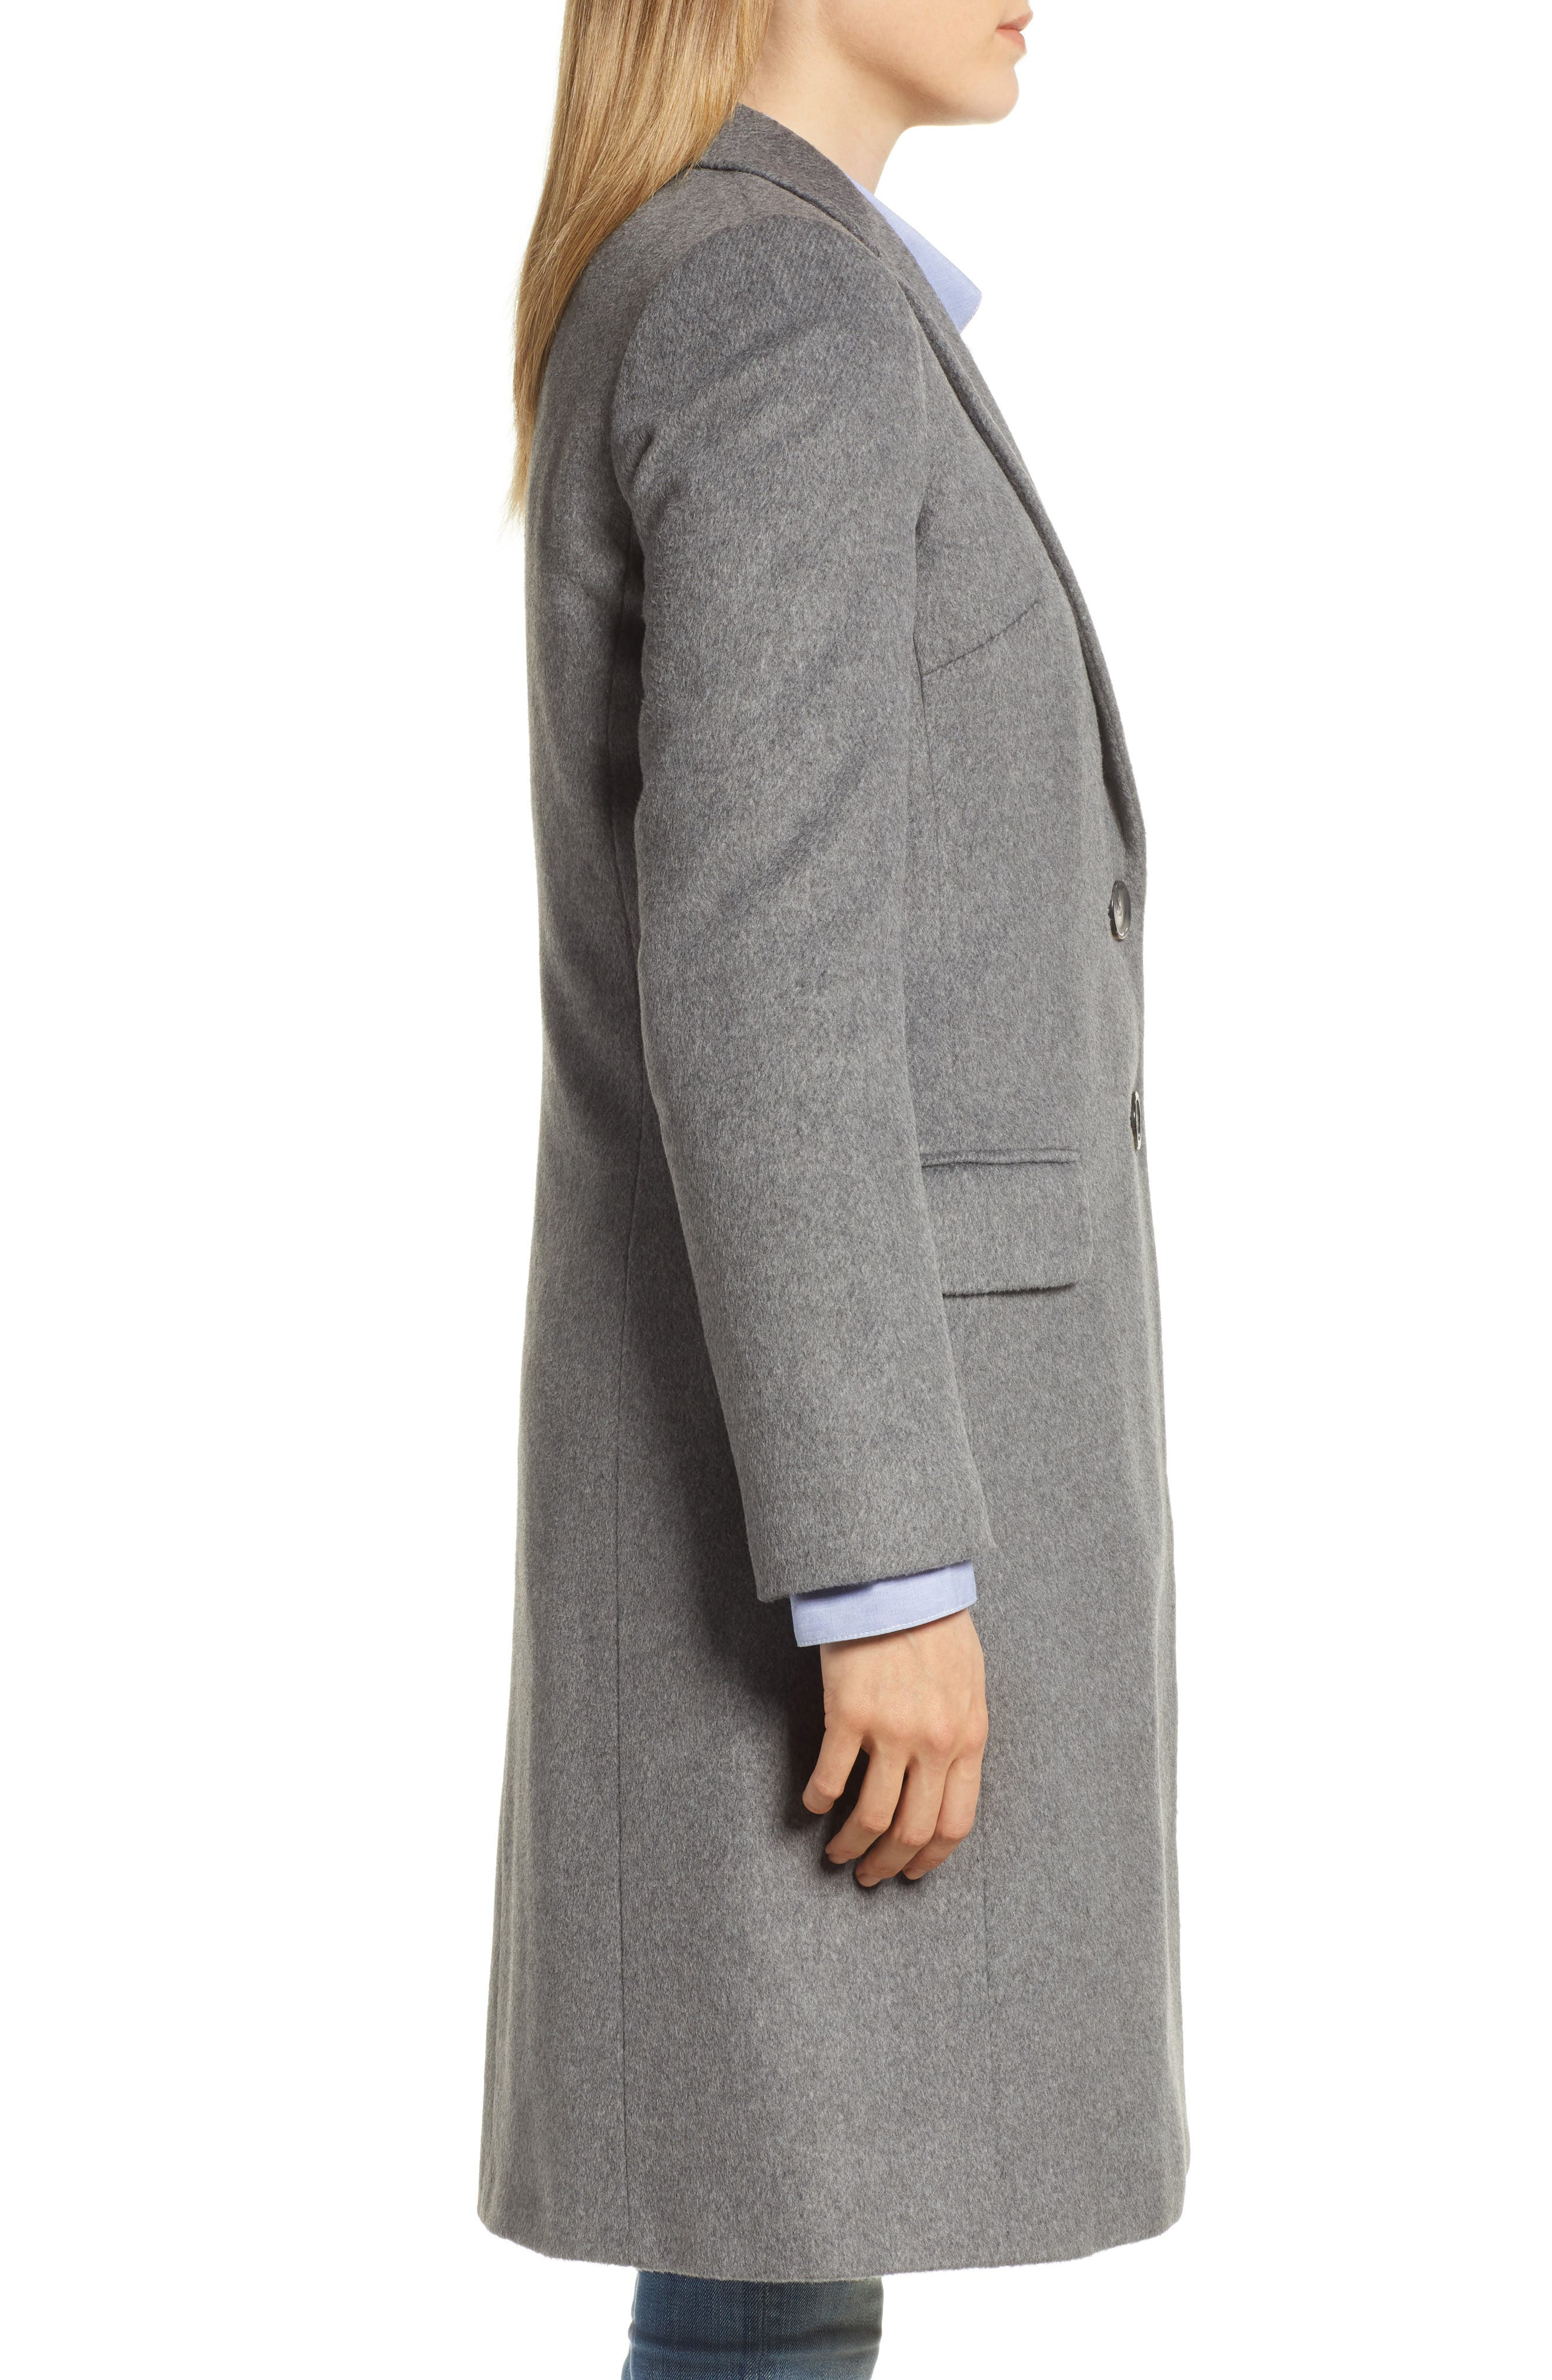 Charles Gray London College Coat,                             Alternate thumbnail 3, color,                             020